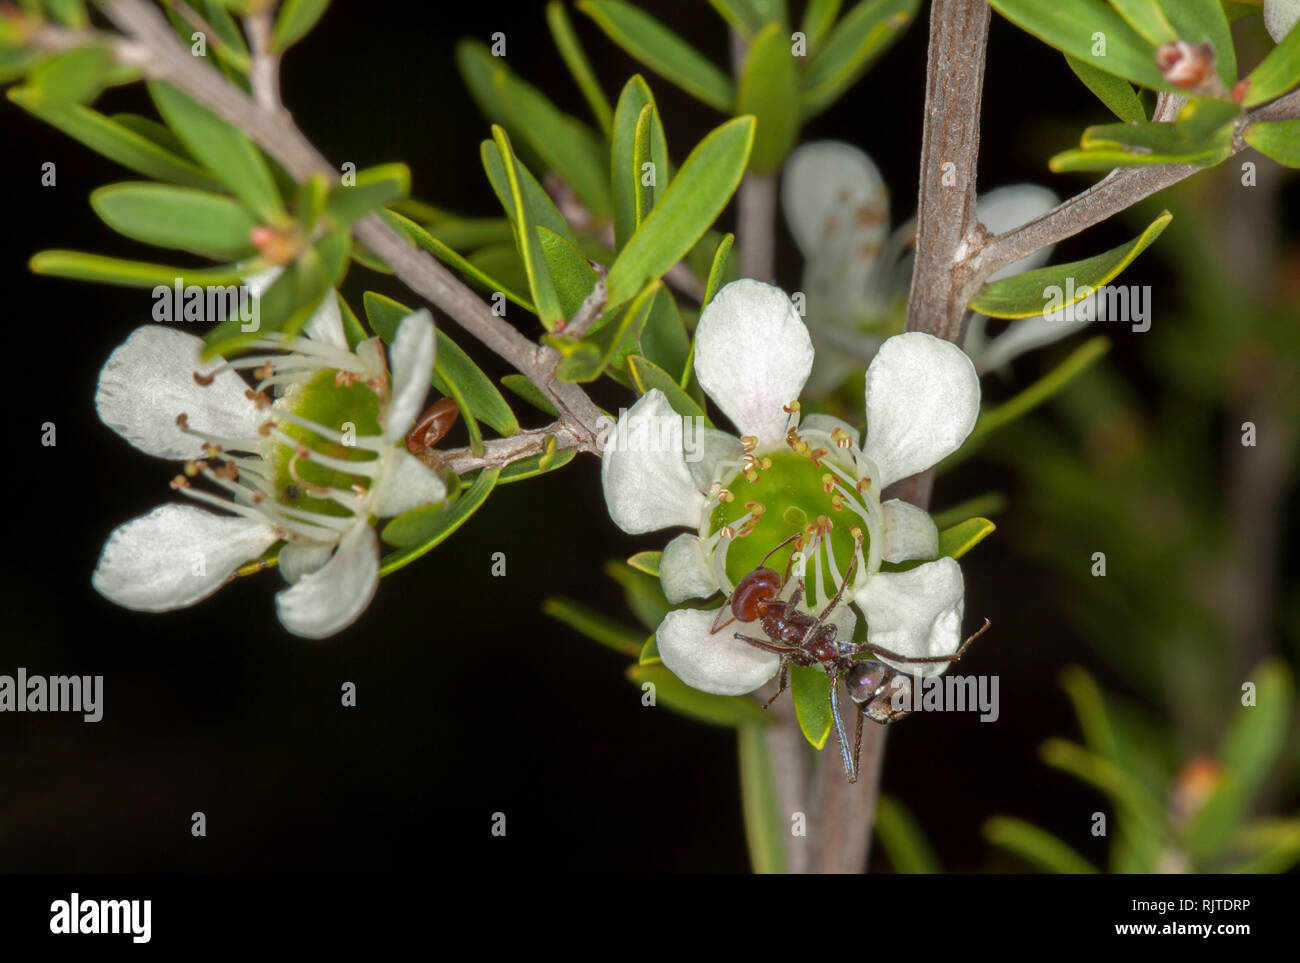 White flowers with green centres and green leaves of Leptospermum, Australian tea tree wildflowers with large ant feeding on nectar - Stock Image